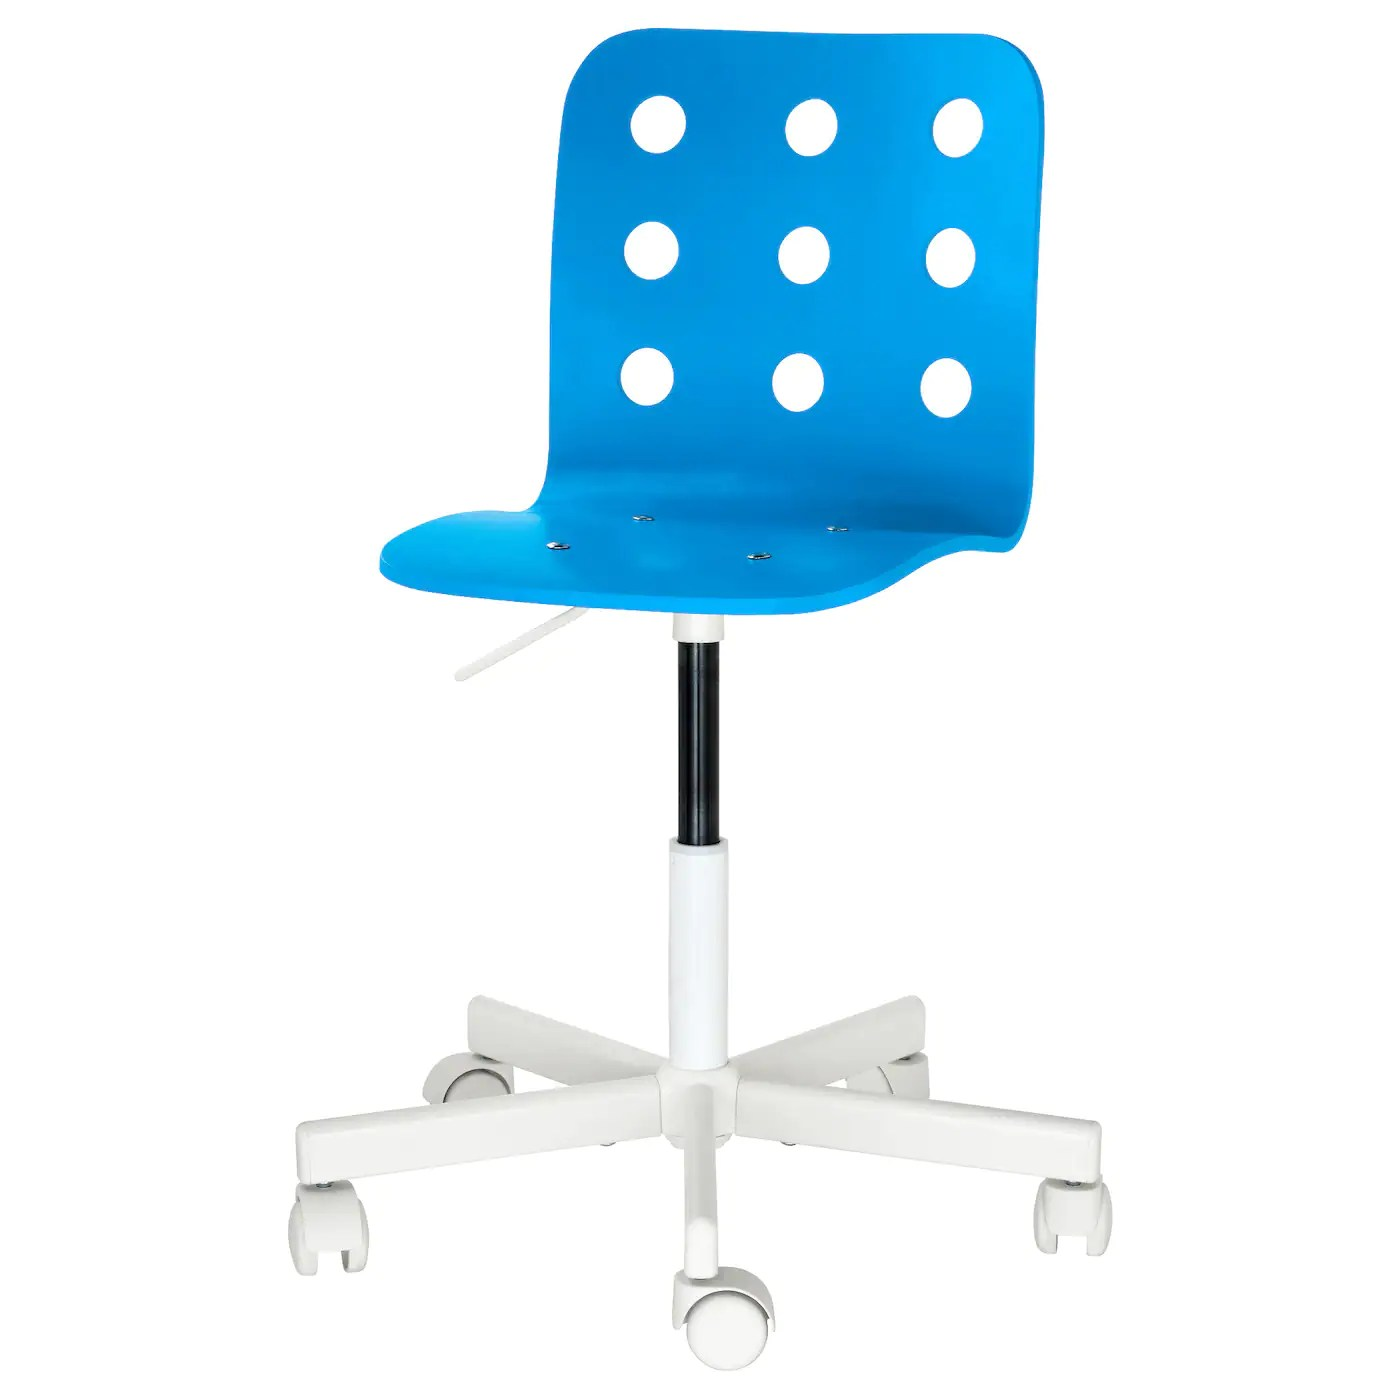 Ikea Desk Chair Jules Children 39s Desk Chair Blue White Ikea